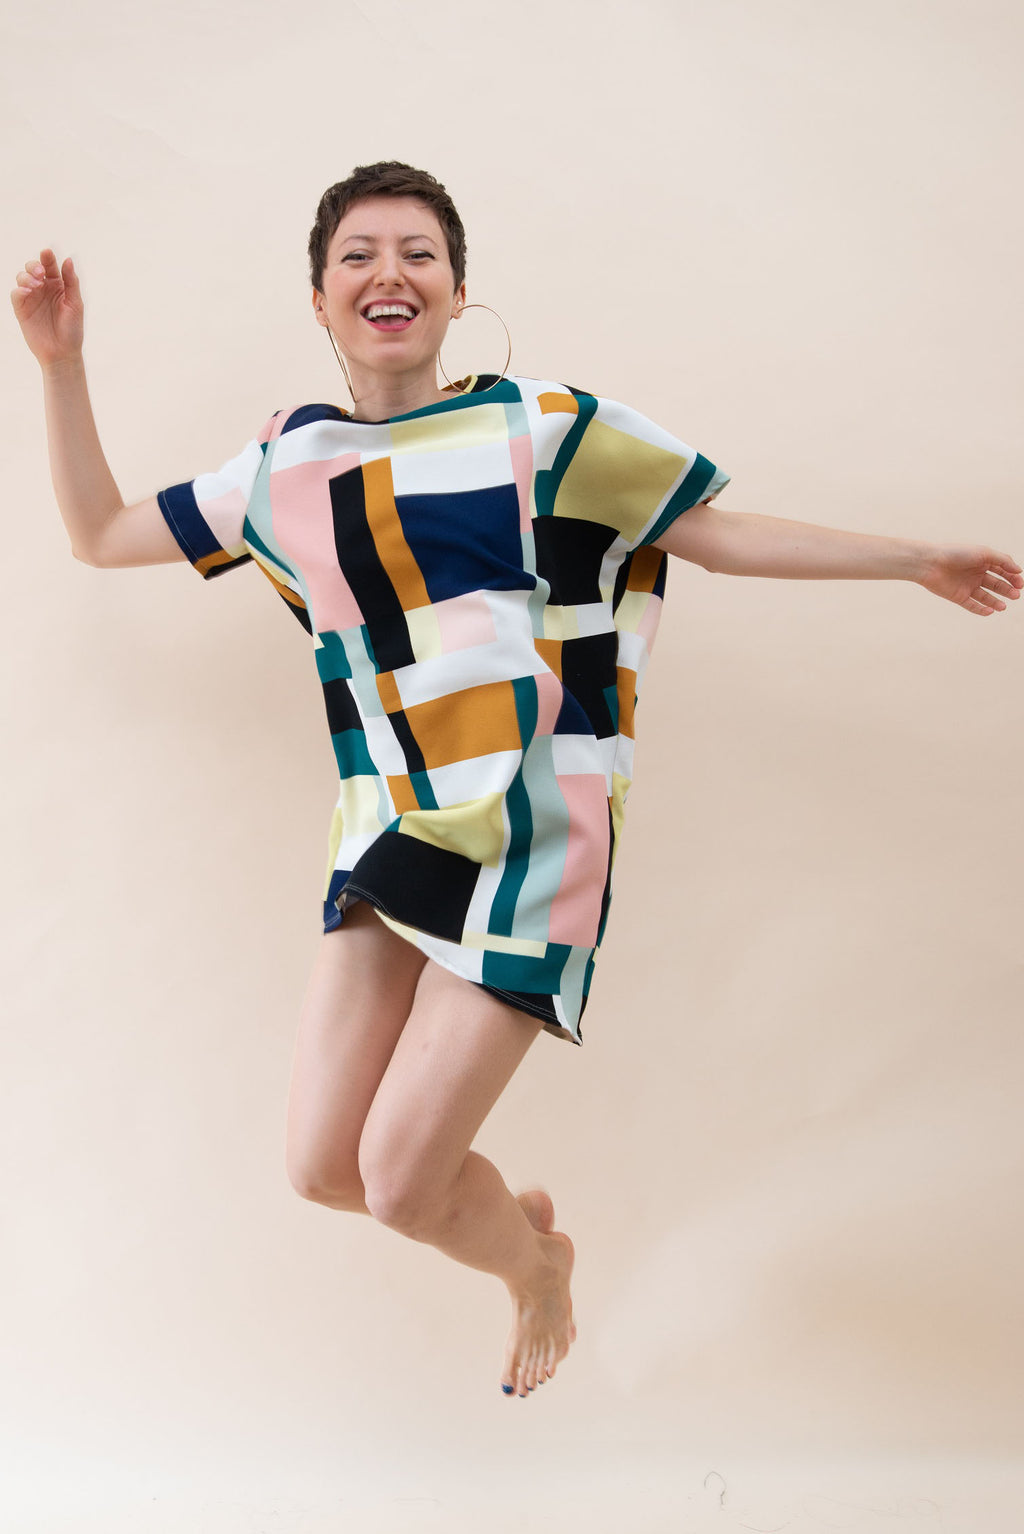 The Asymmetrical Dress - Colorful Cubics